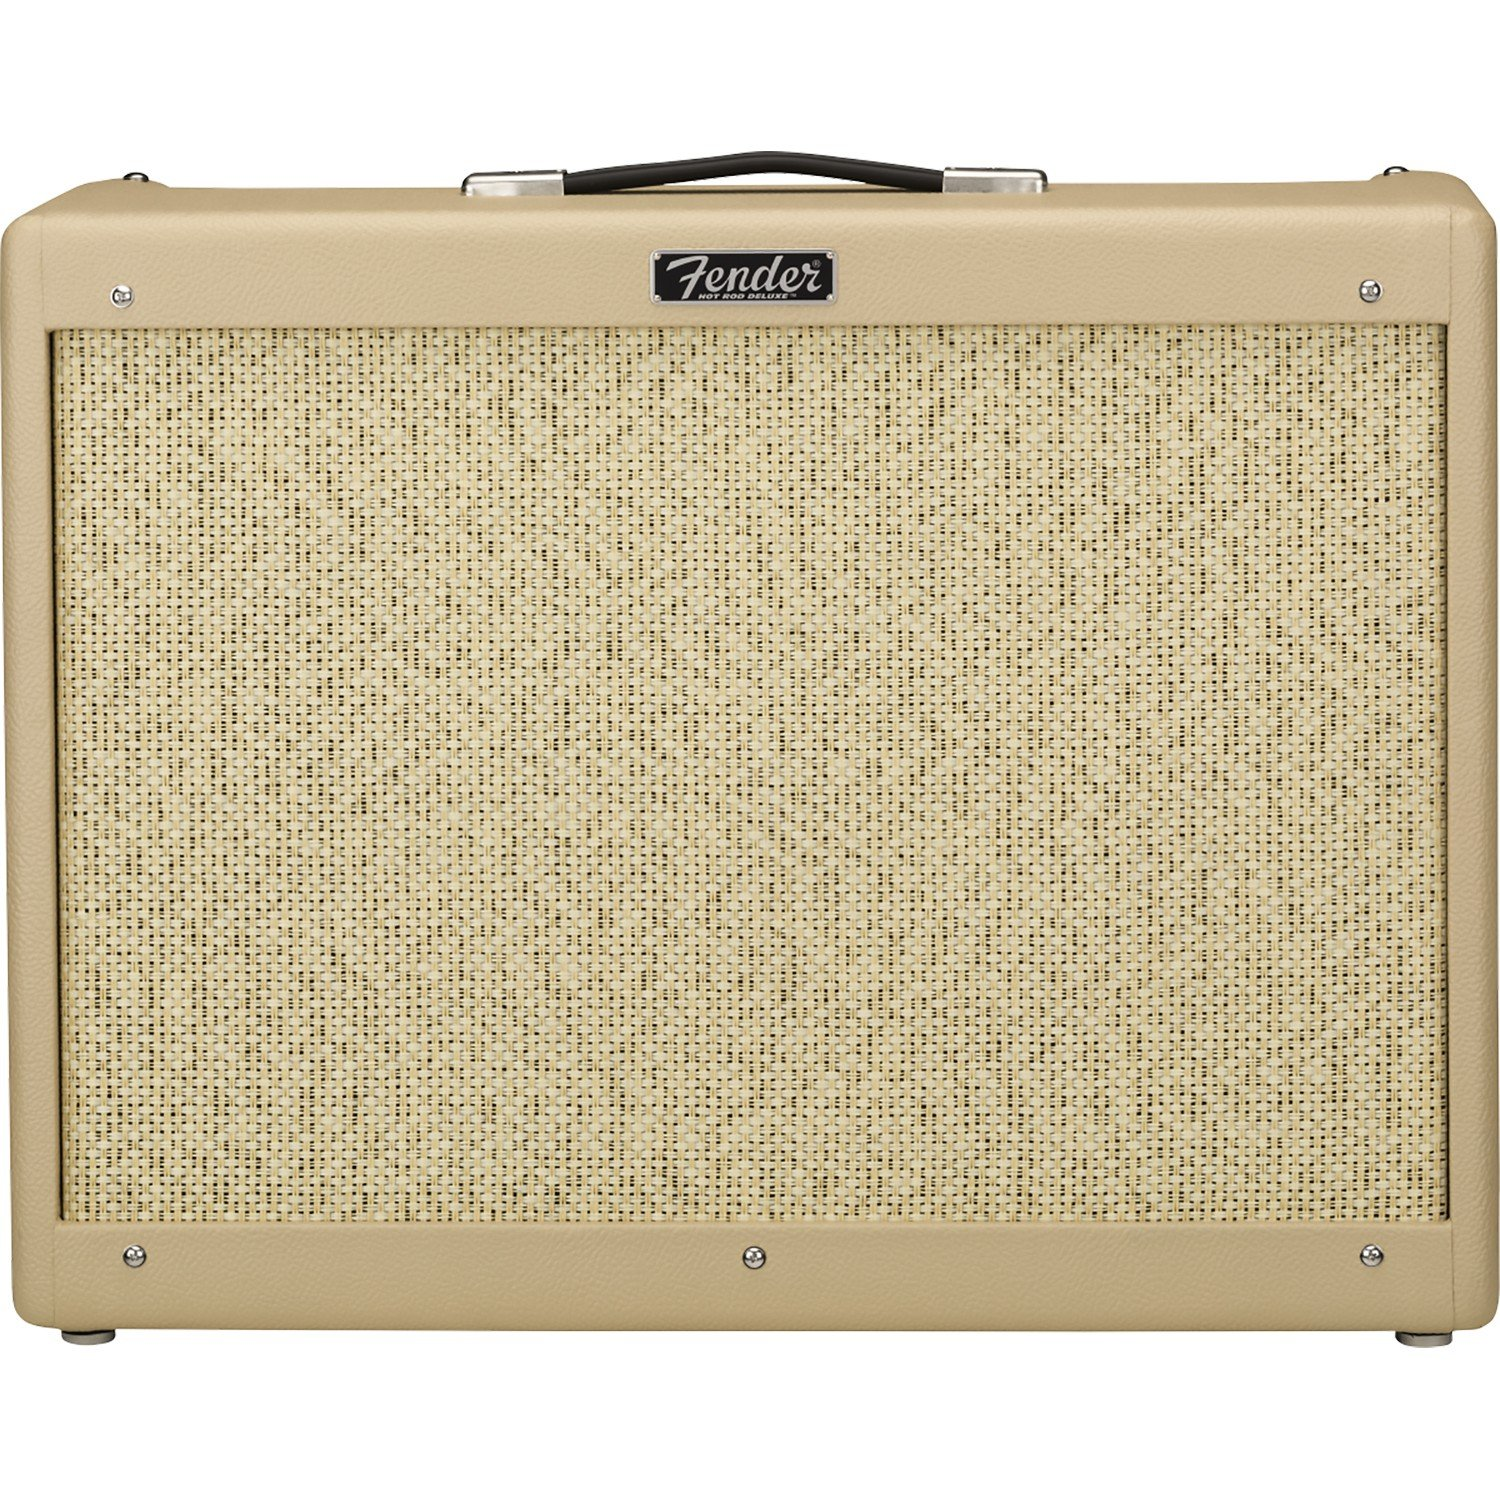 Fender Limited Edition Hot Rod Deluxe IV, Vanilla Cane